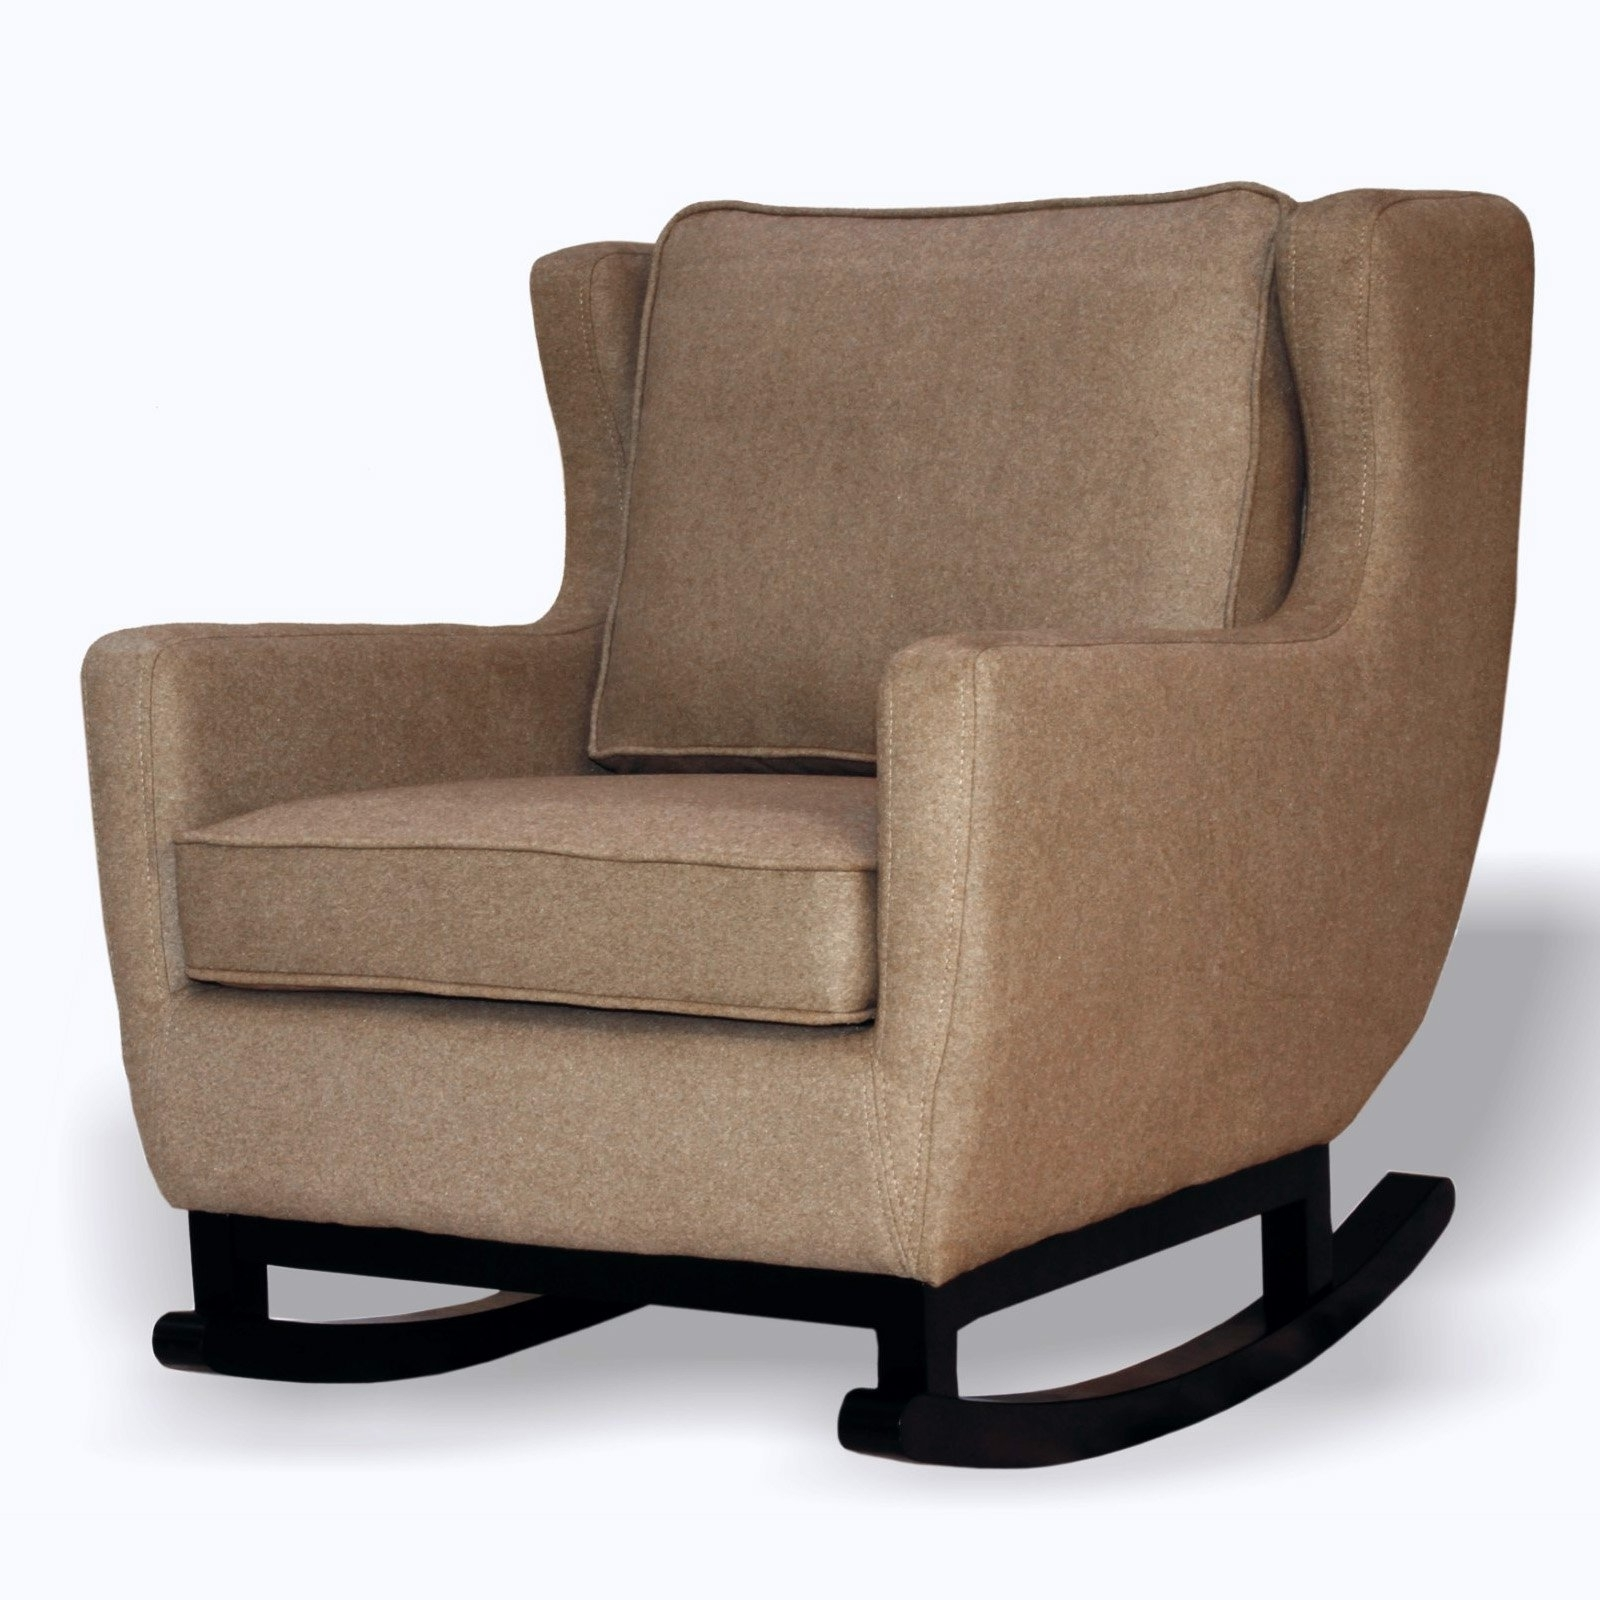 Upholstered Rocking Chair 2014 : Milton Milano Designs – Upholstered For 2018 Upholstered Rocking Chairs (View 12 of 15)